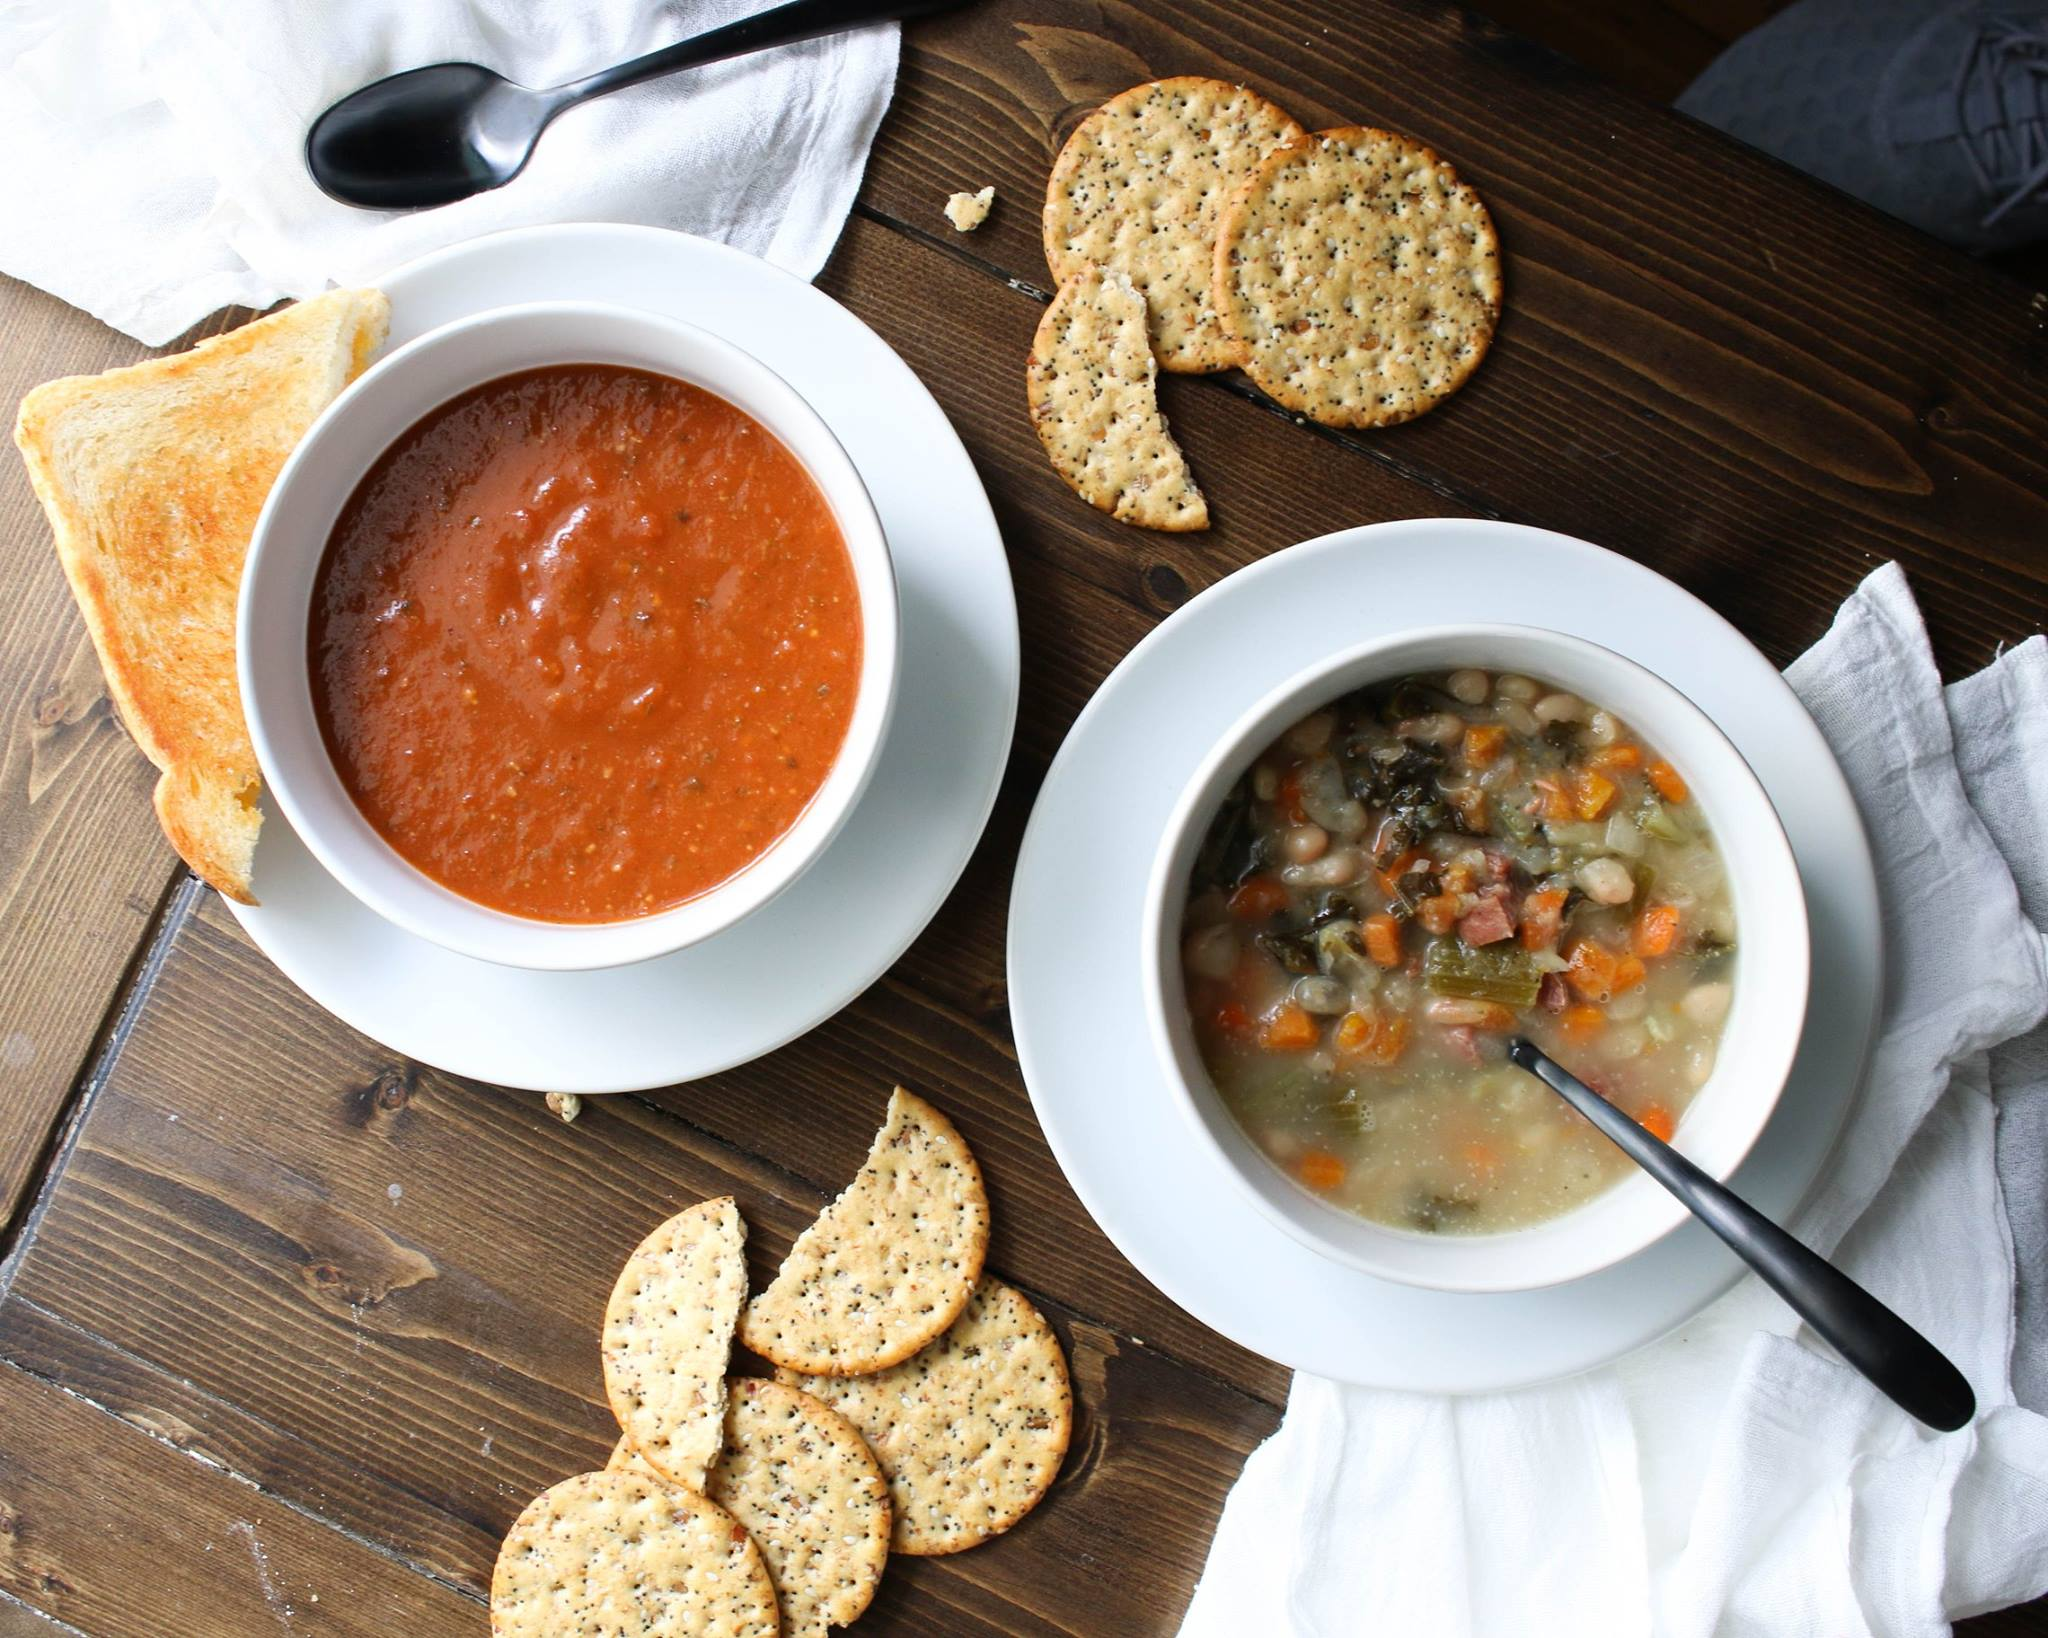 Soups from Soup Peddler